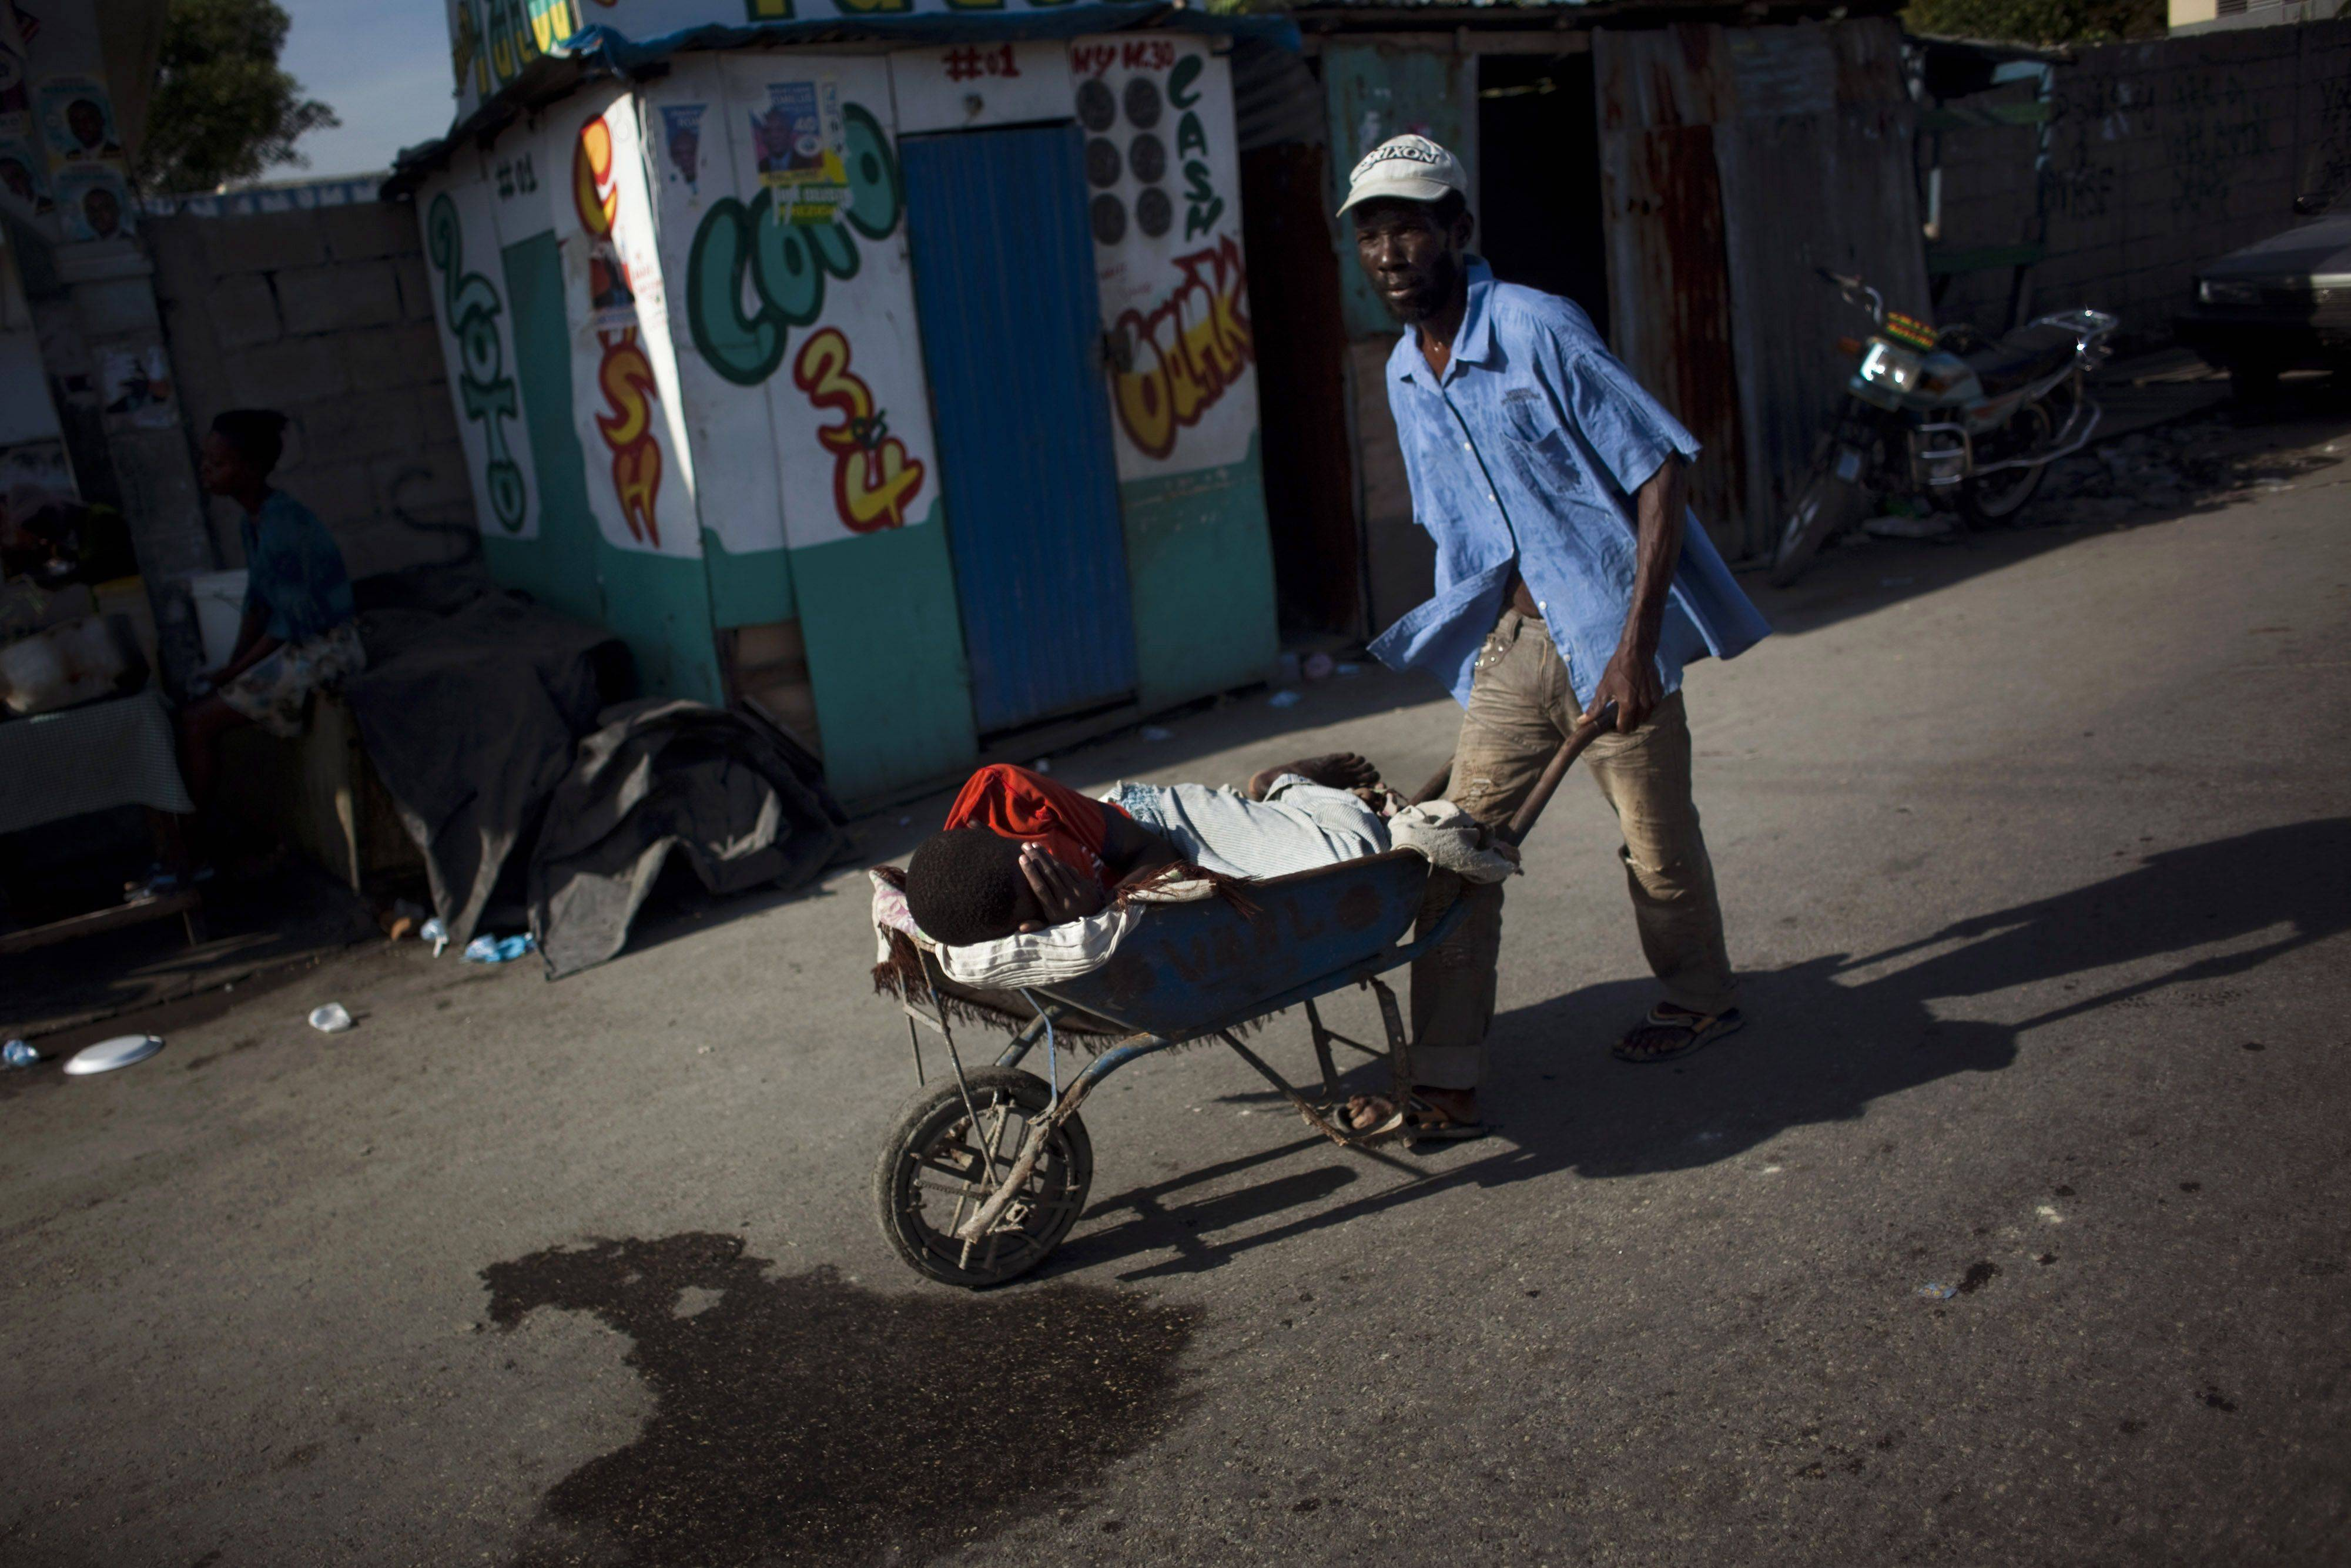 A man pushes a boy suffering cholera symptoms in a wheelbarrow to St. Catherine hospital, run by Doctors Without Borders, in the Cite Soleil slum in Port-au-Prince, Haiti. Thousands of people have been hospitalized for cholera across Haiti with symptoms including serious diarrhea, vomiting and fever and hundreds have died.